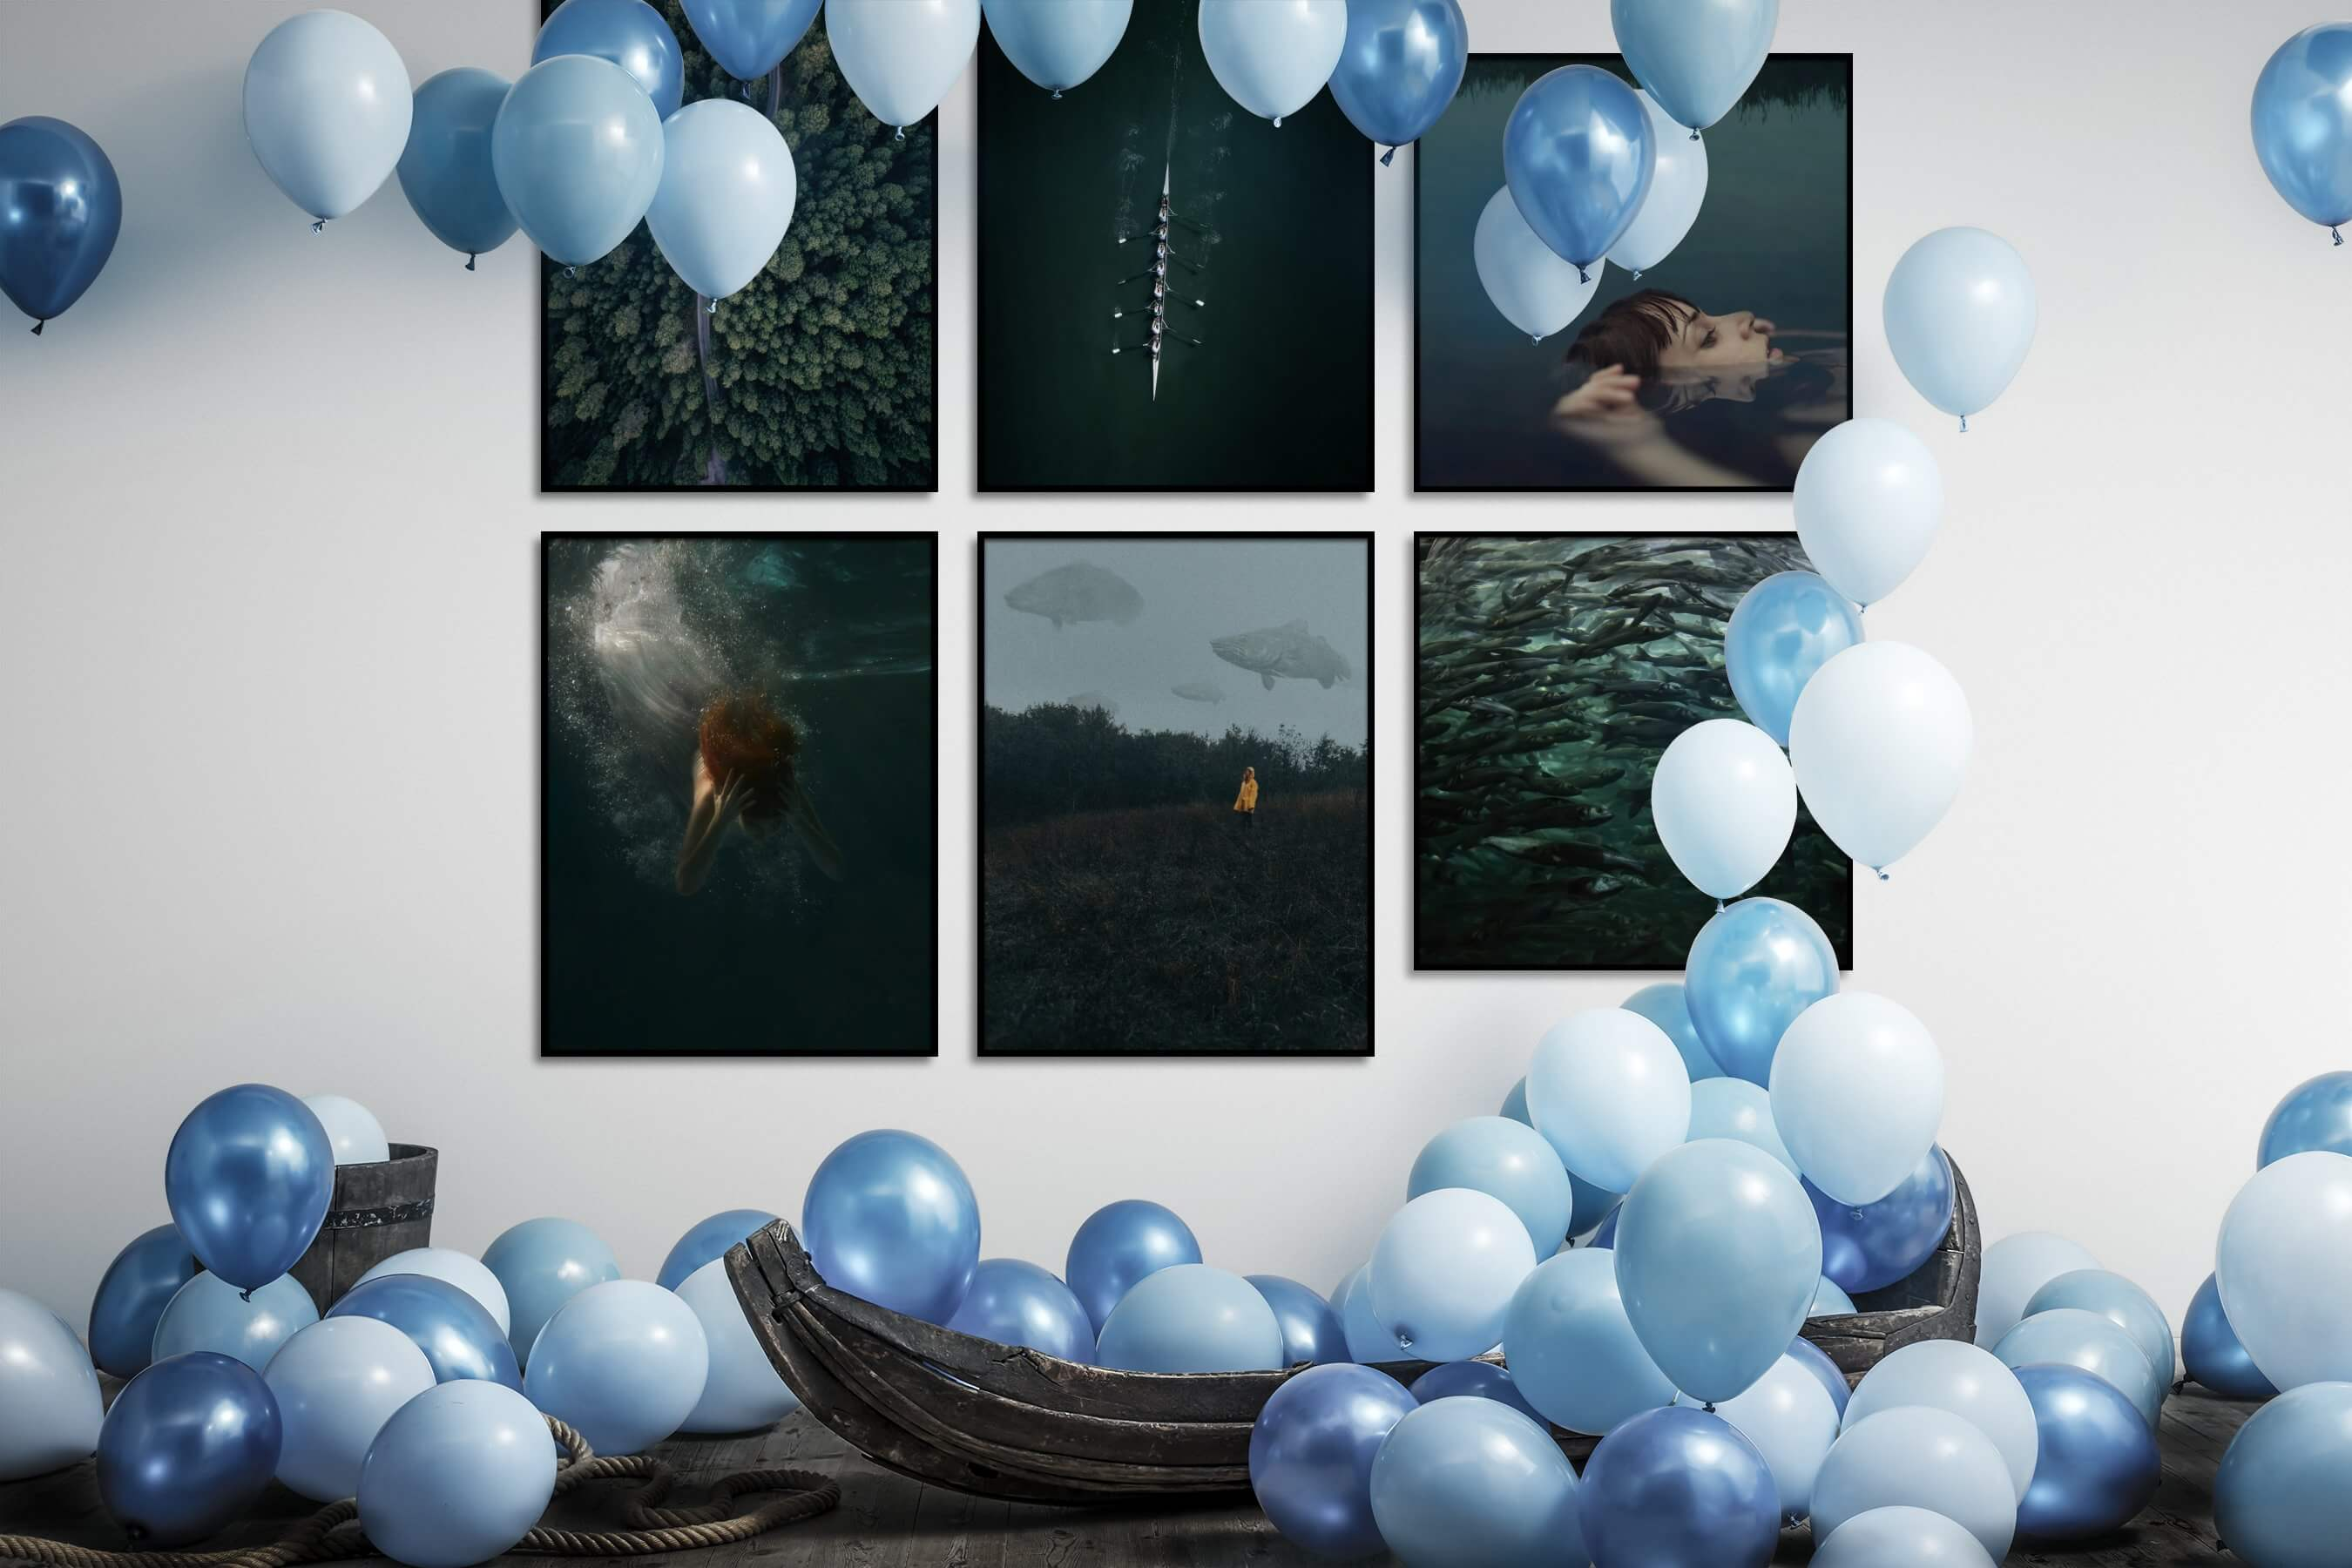 Gallery wall idea with six framed pictures arranged on a wall depicting For the Moderate, Nature, For the Minimalist, Beach & Water, Artsy, Animals, and Country Life